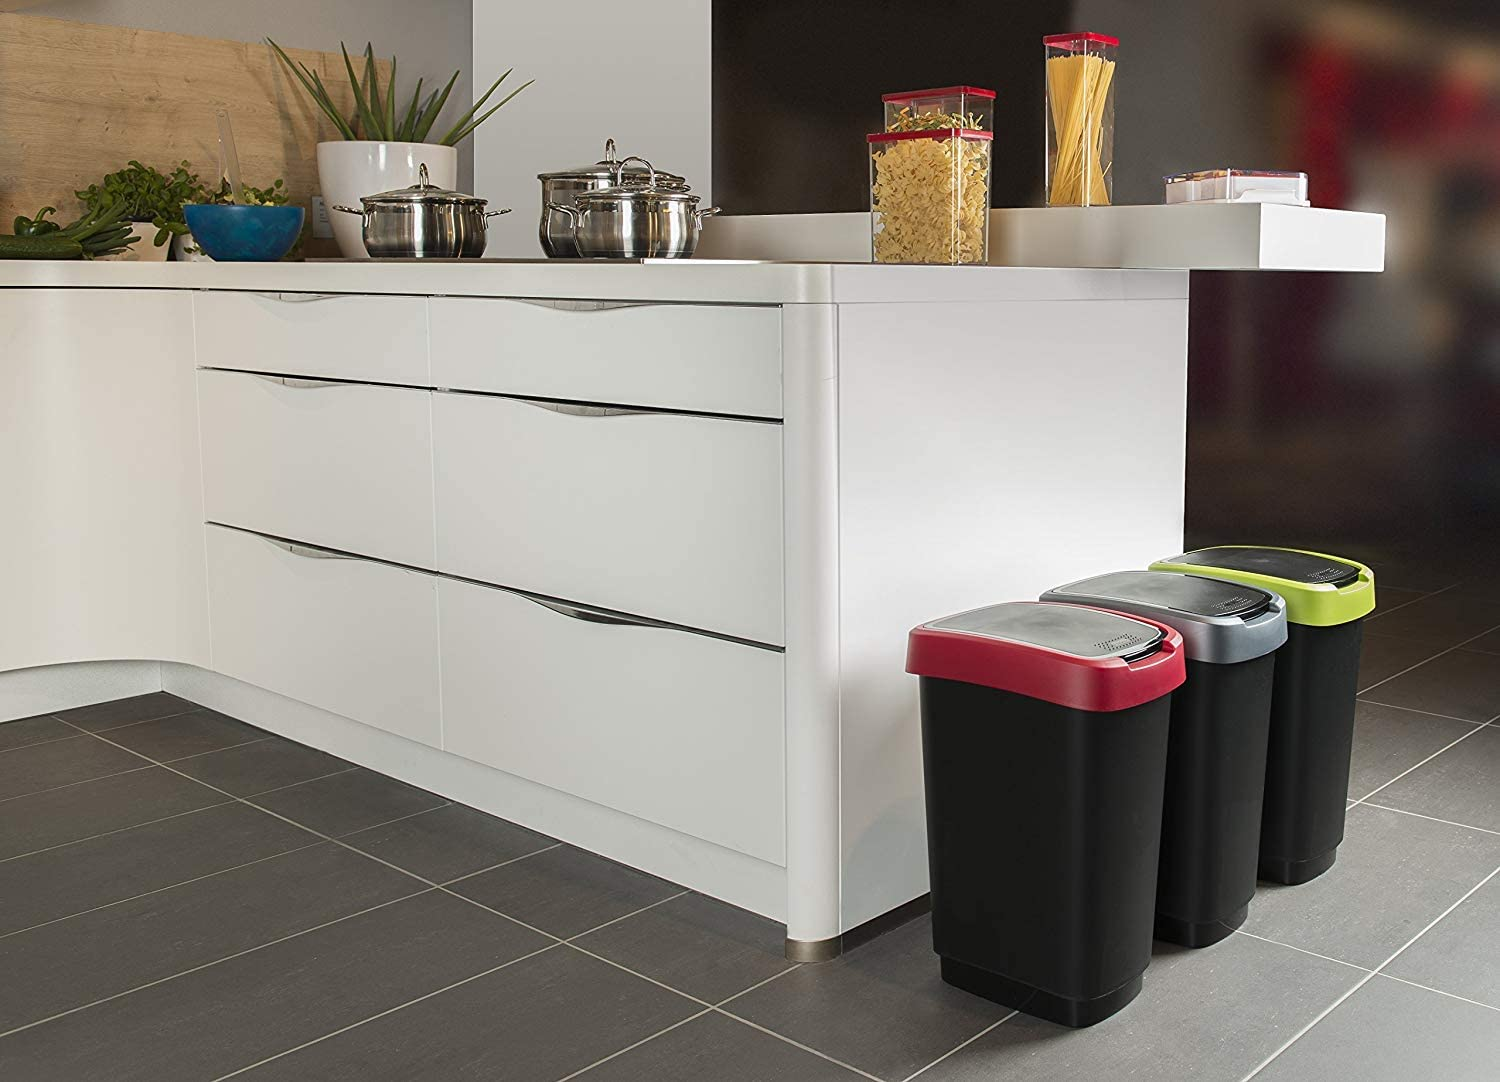 Plastic One Size 40,1 x 29,8 x 60,2 cm PP 50 litres Rotho Twist Waste bin 50l with lid Black Ruby Red